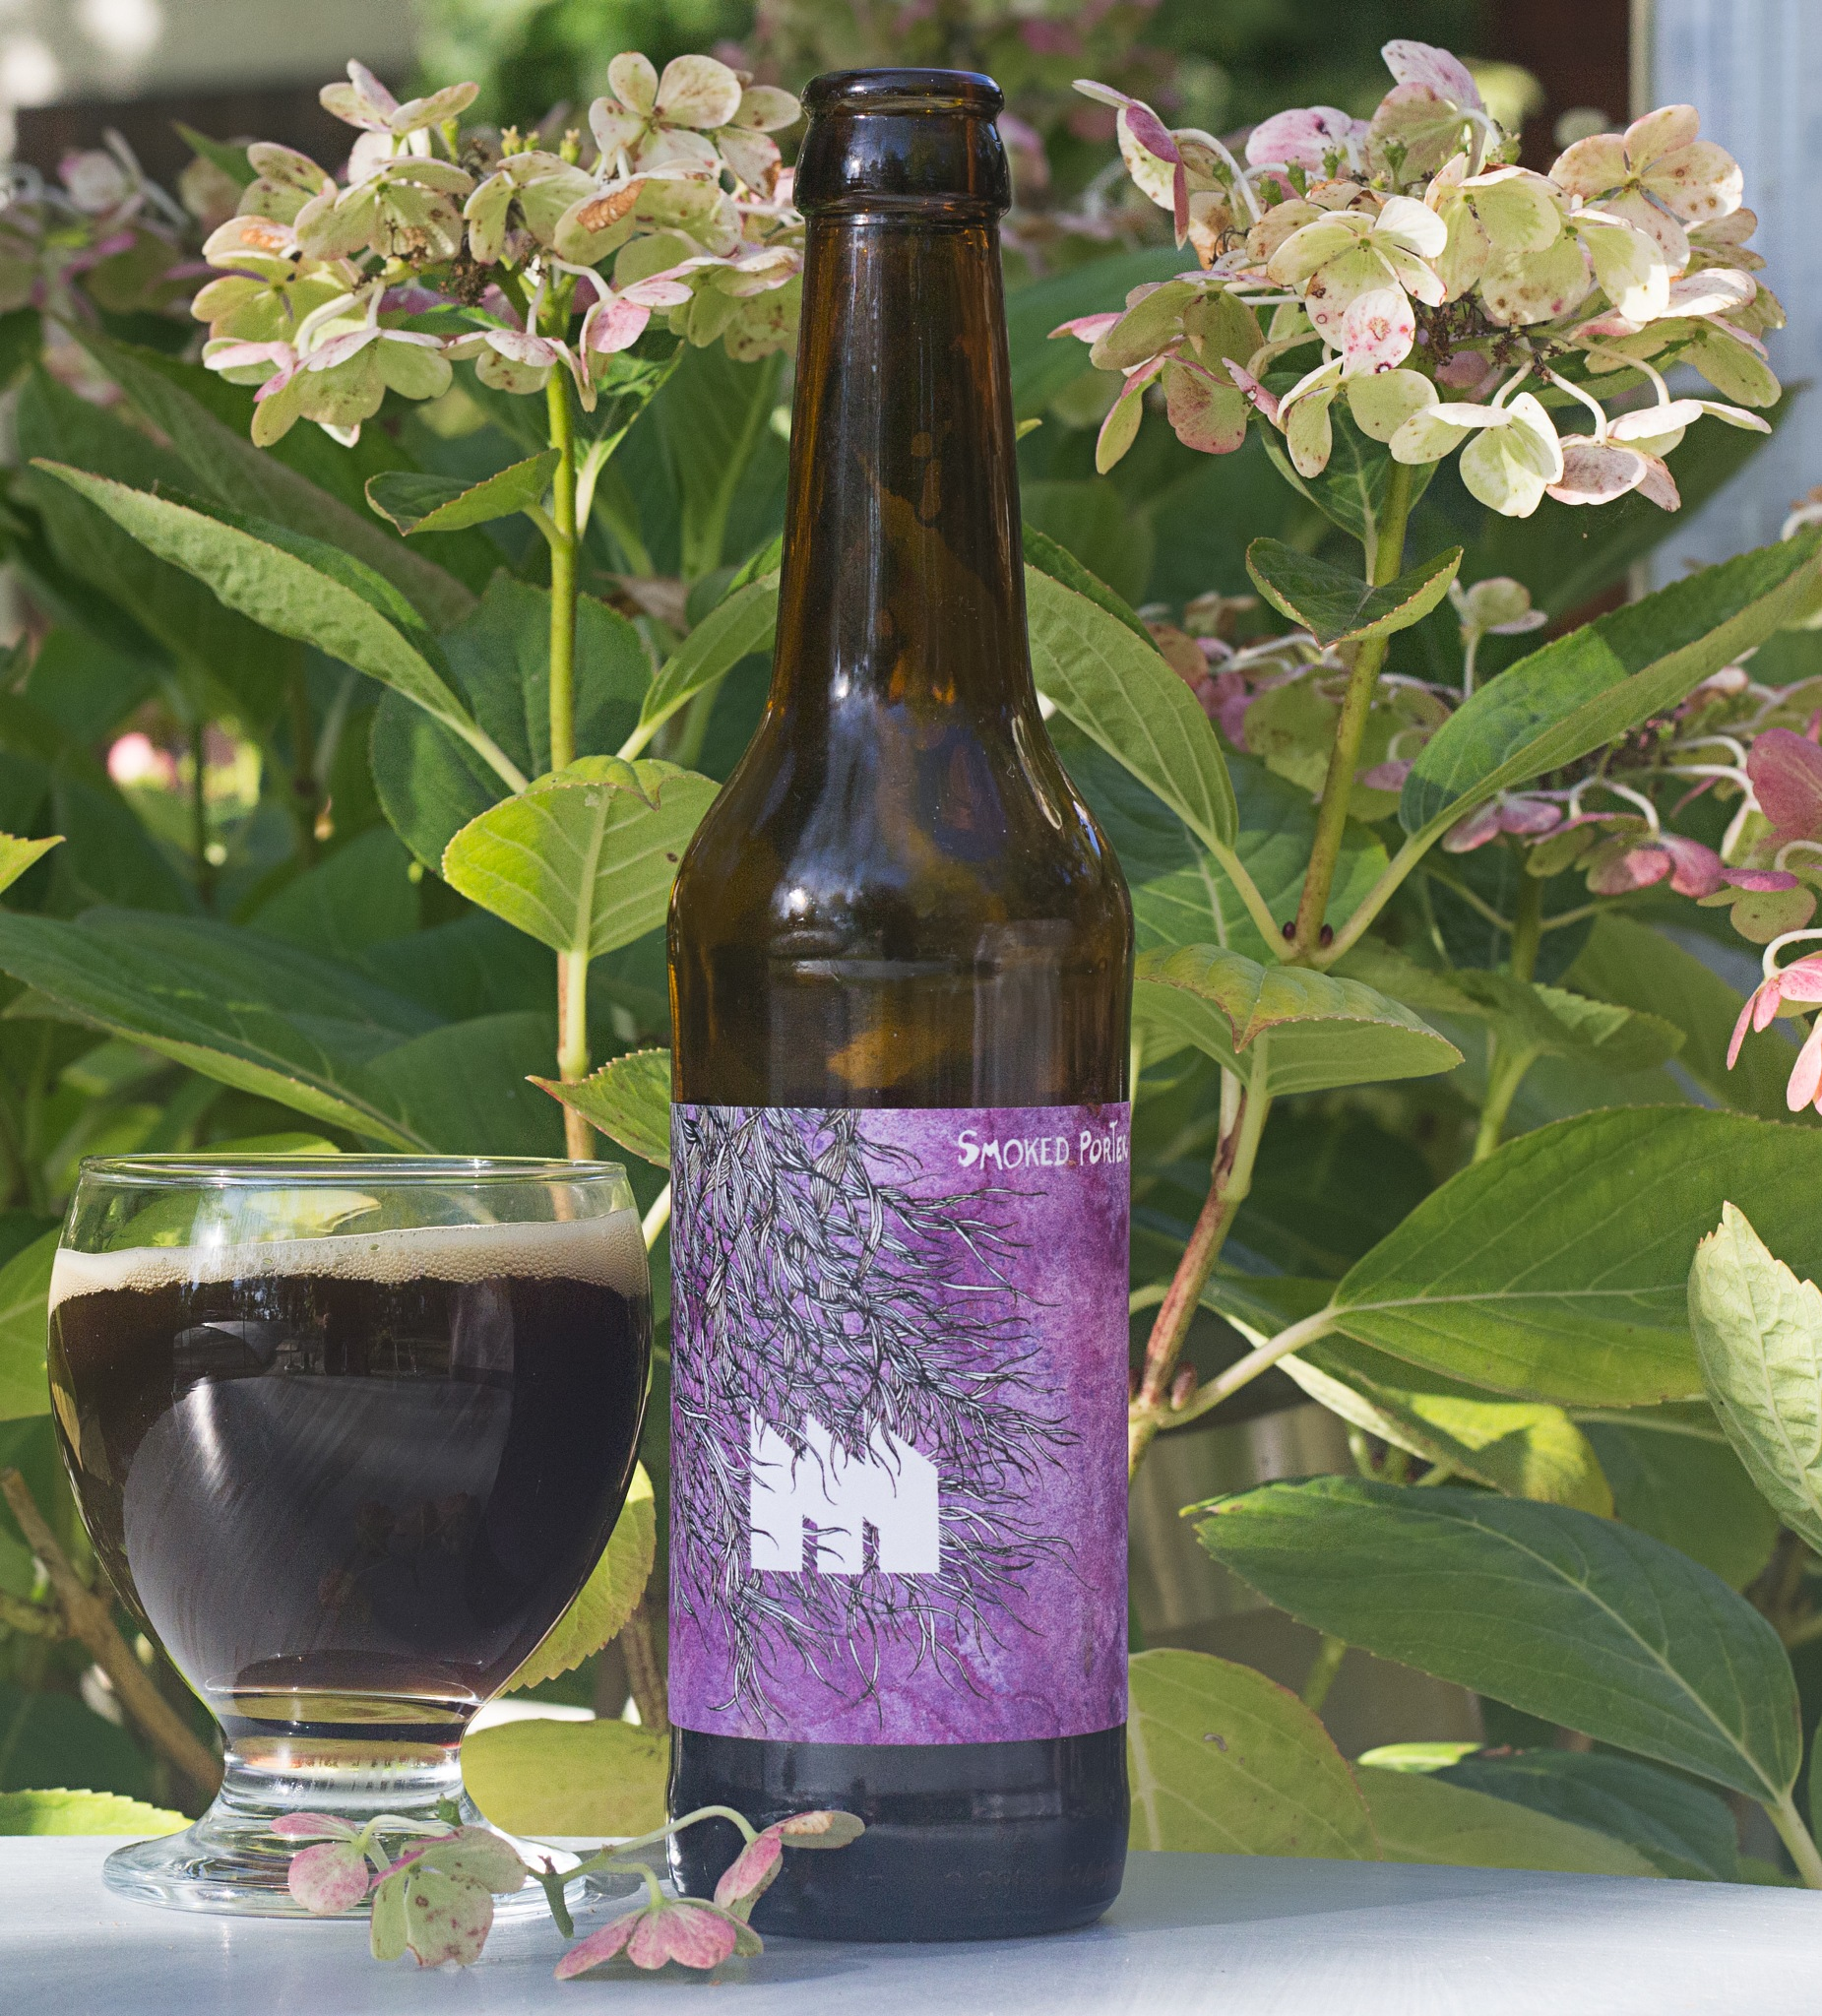 Smoked Porter by Franck Rouanet